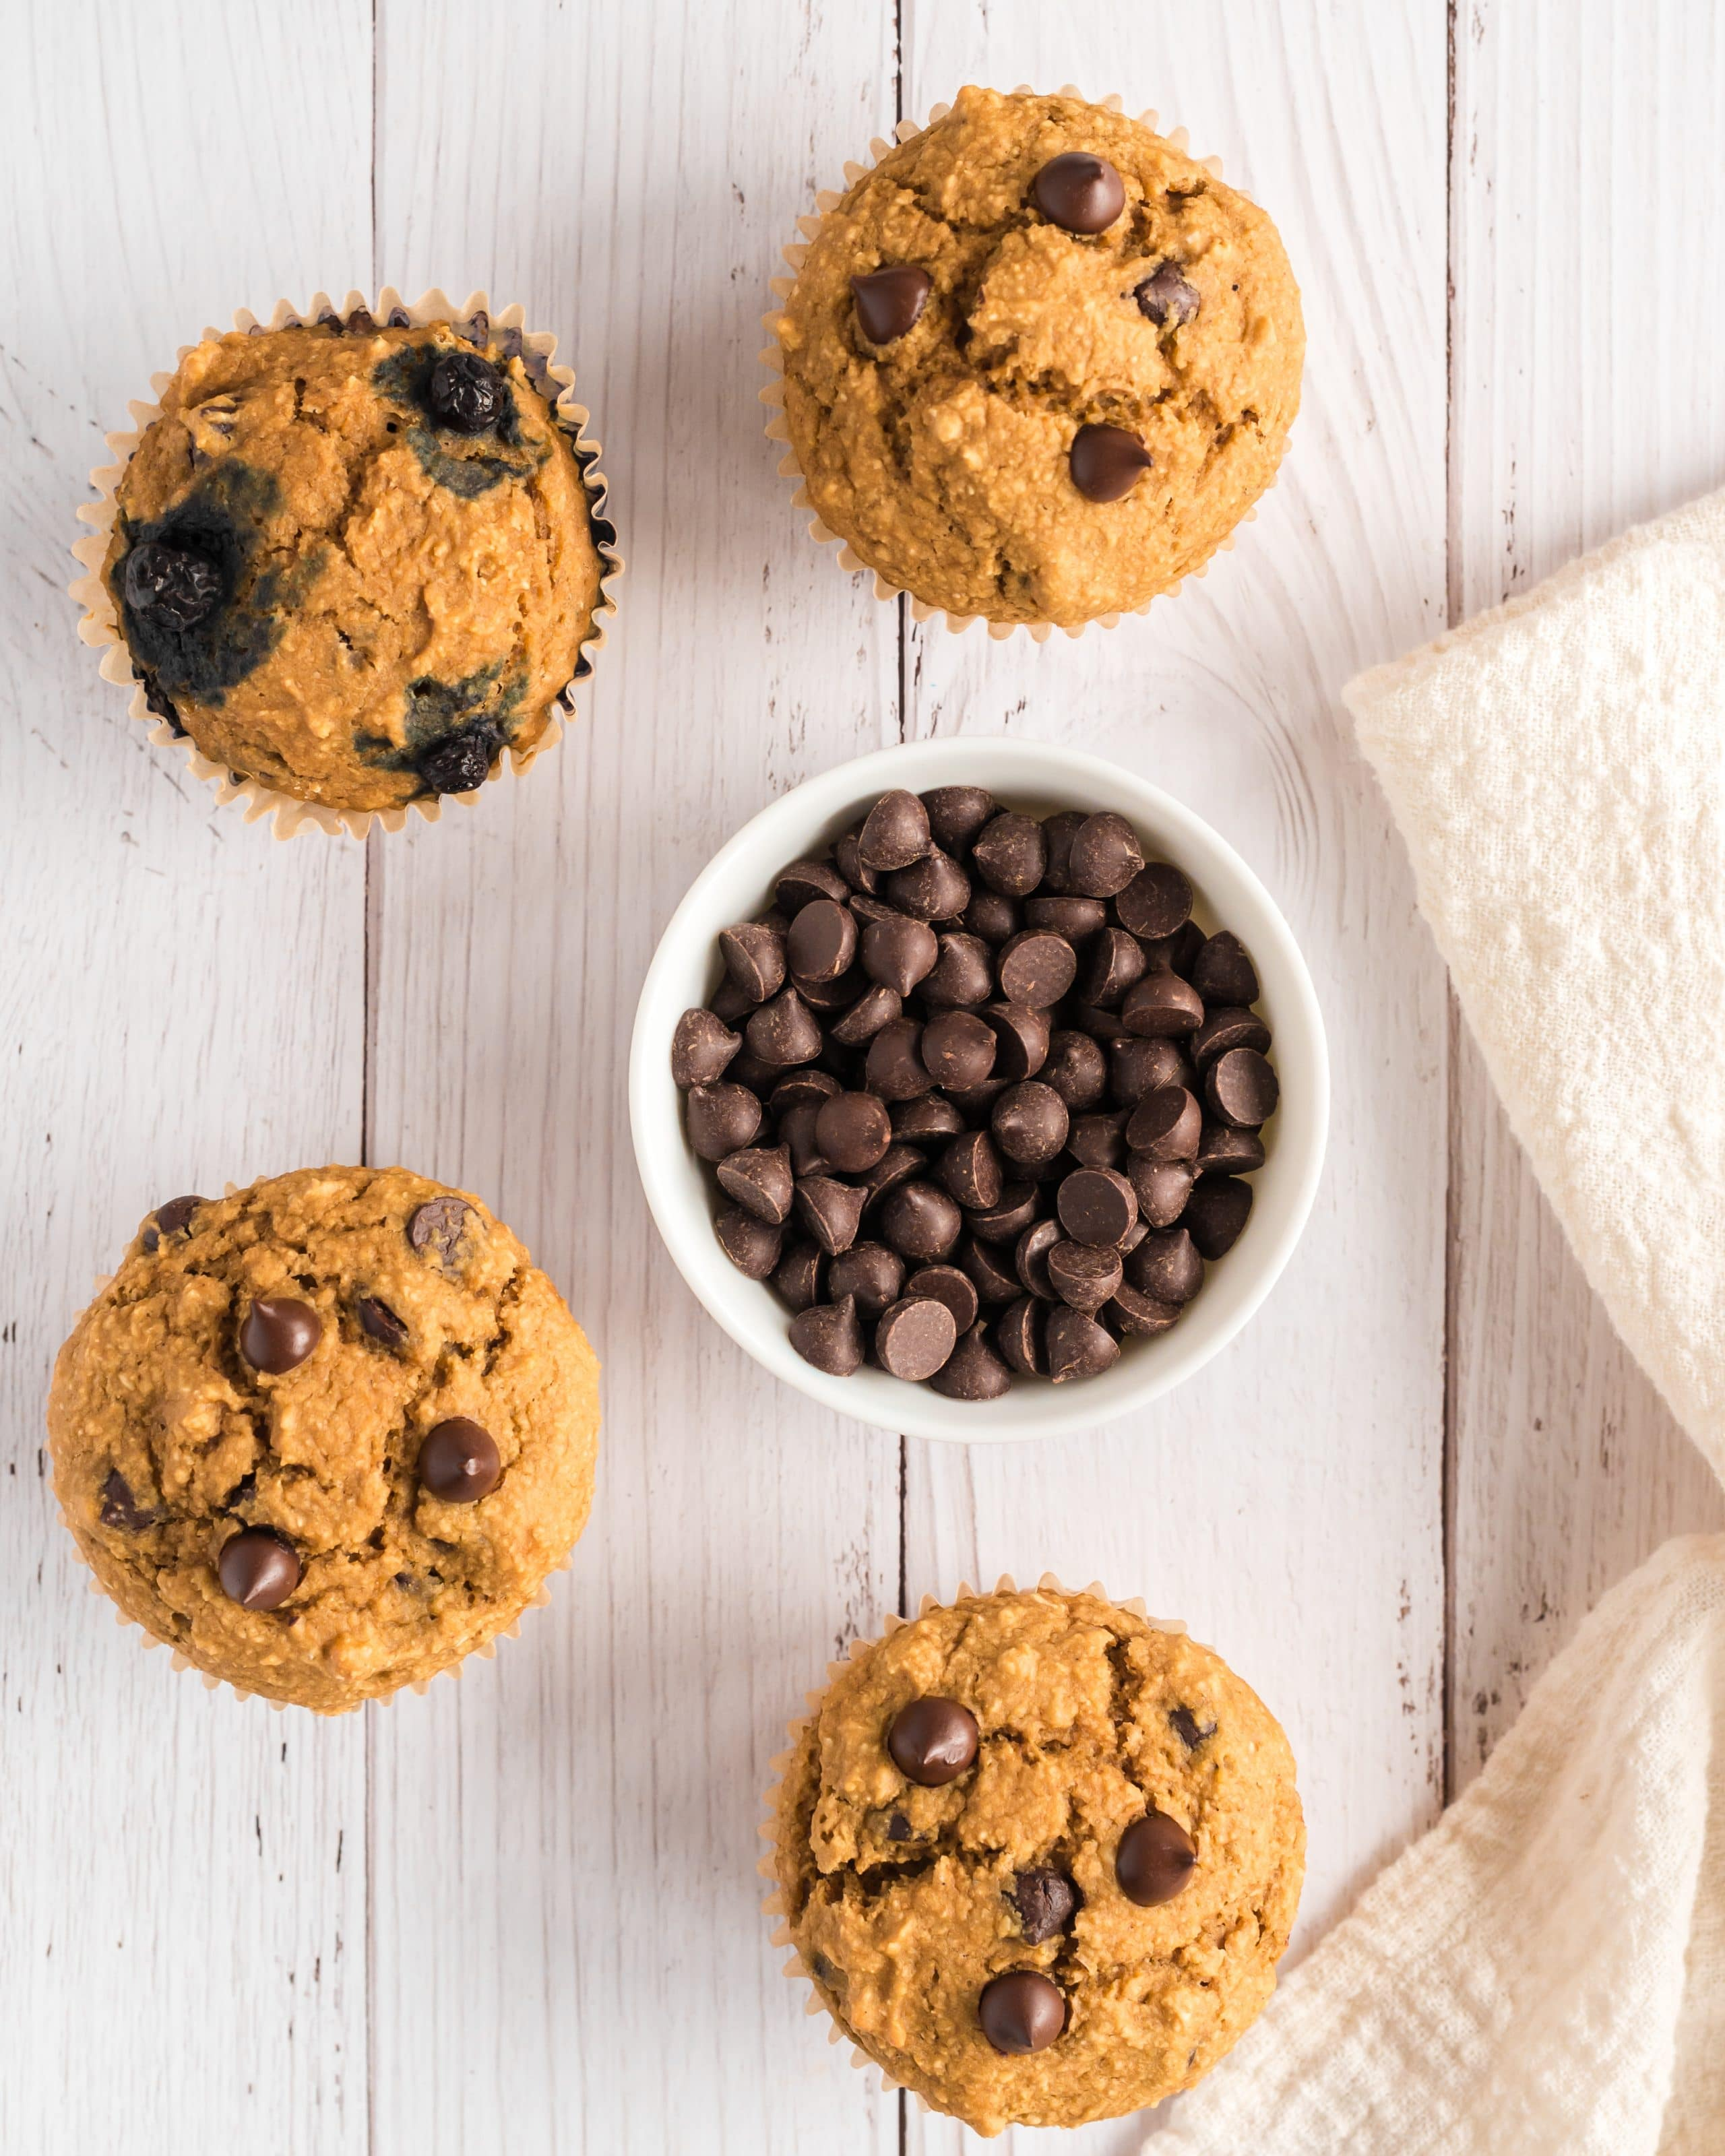 muffins (some with blueberries) on table surrounding bowl of chocolate chips